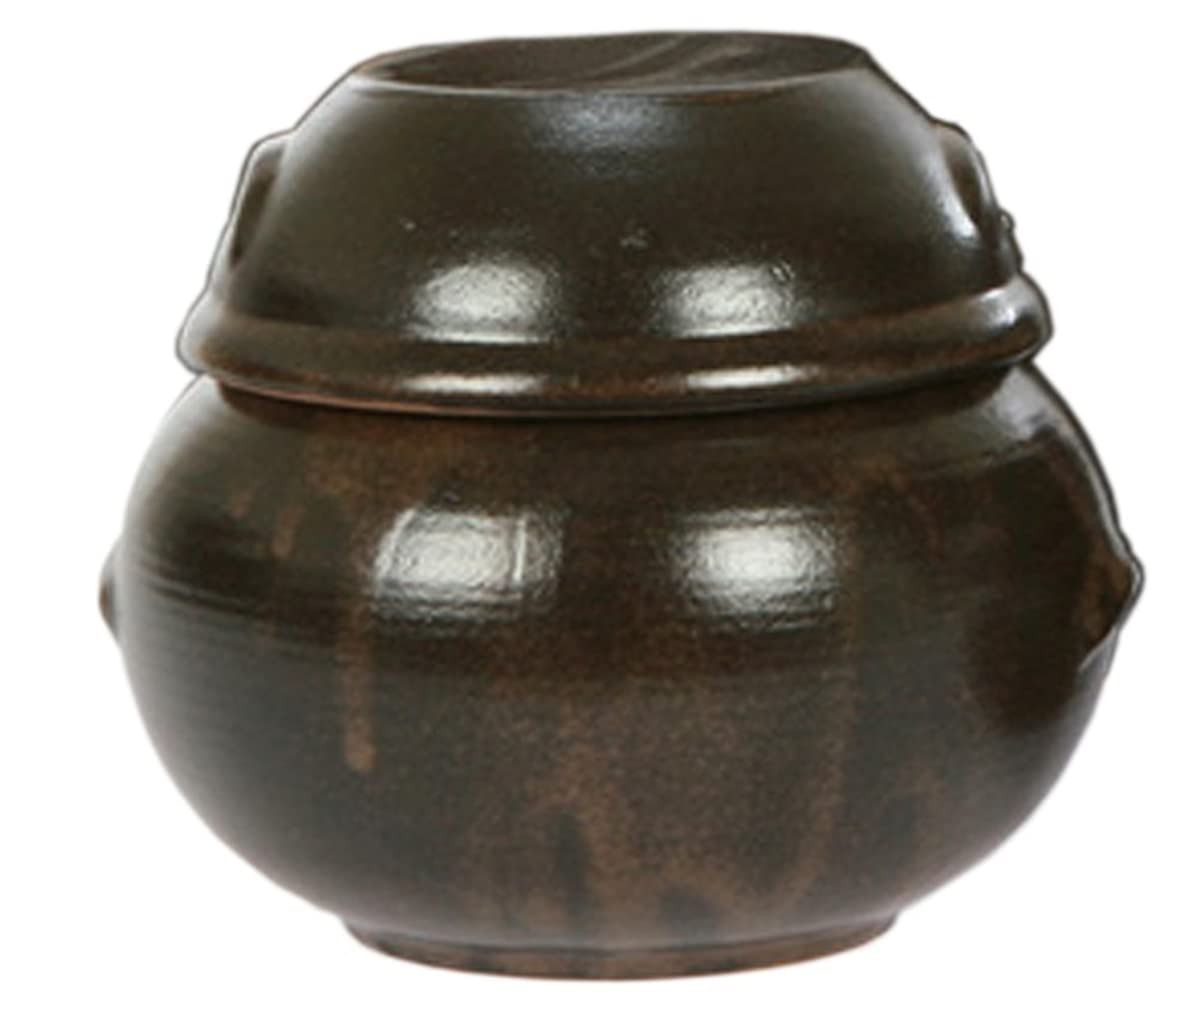 Nsko 16.23ounce(480cc) Korean Traditional Table Earthenware Cute Small Size Pottery Pot Jar with Lid